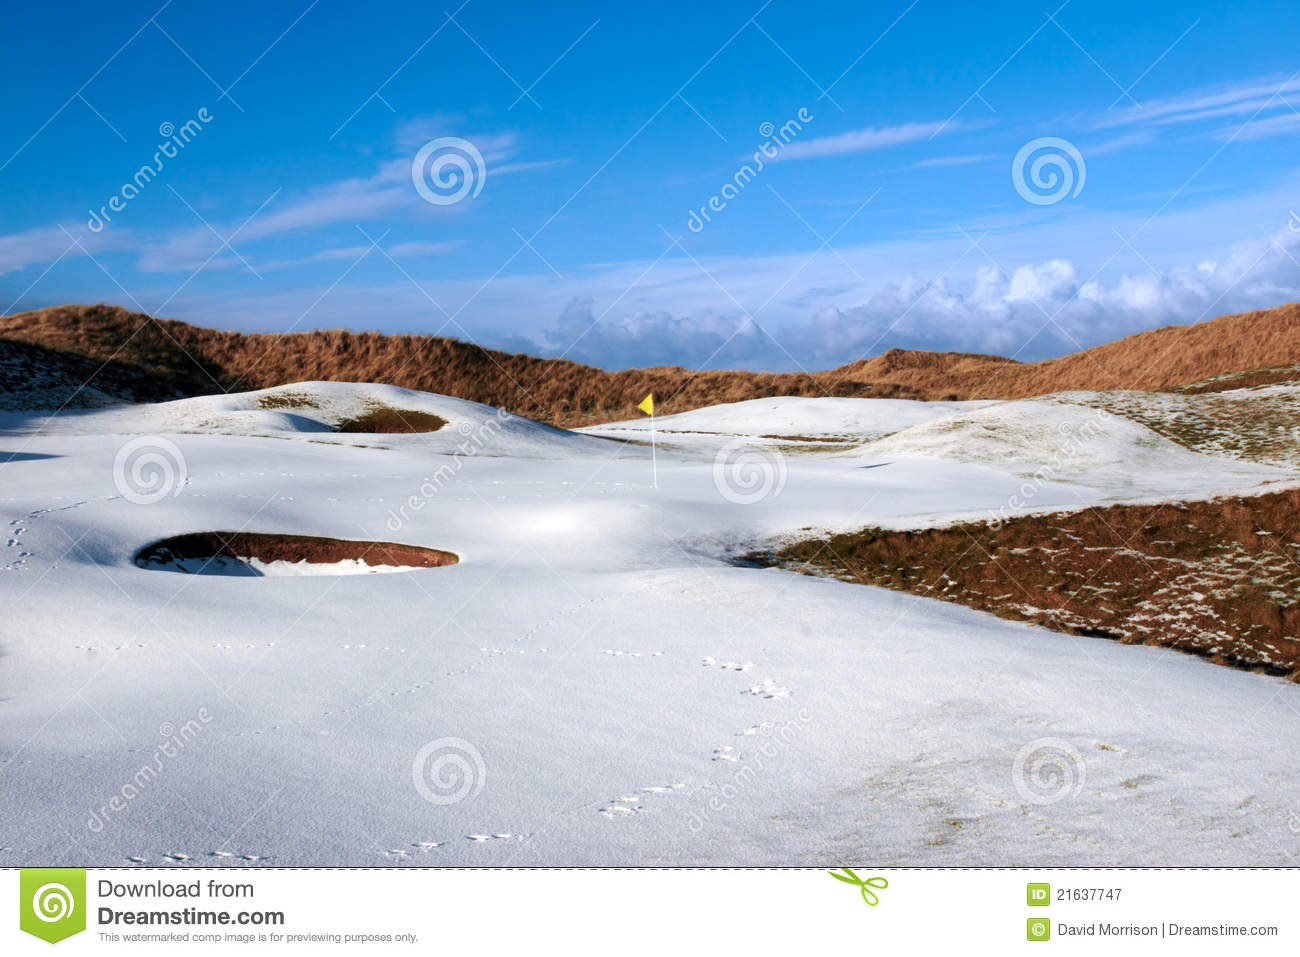 Snowy covered links golf course with yellow flag